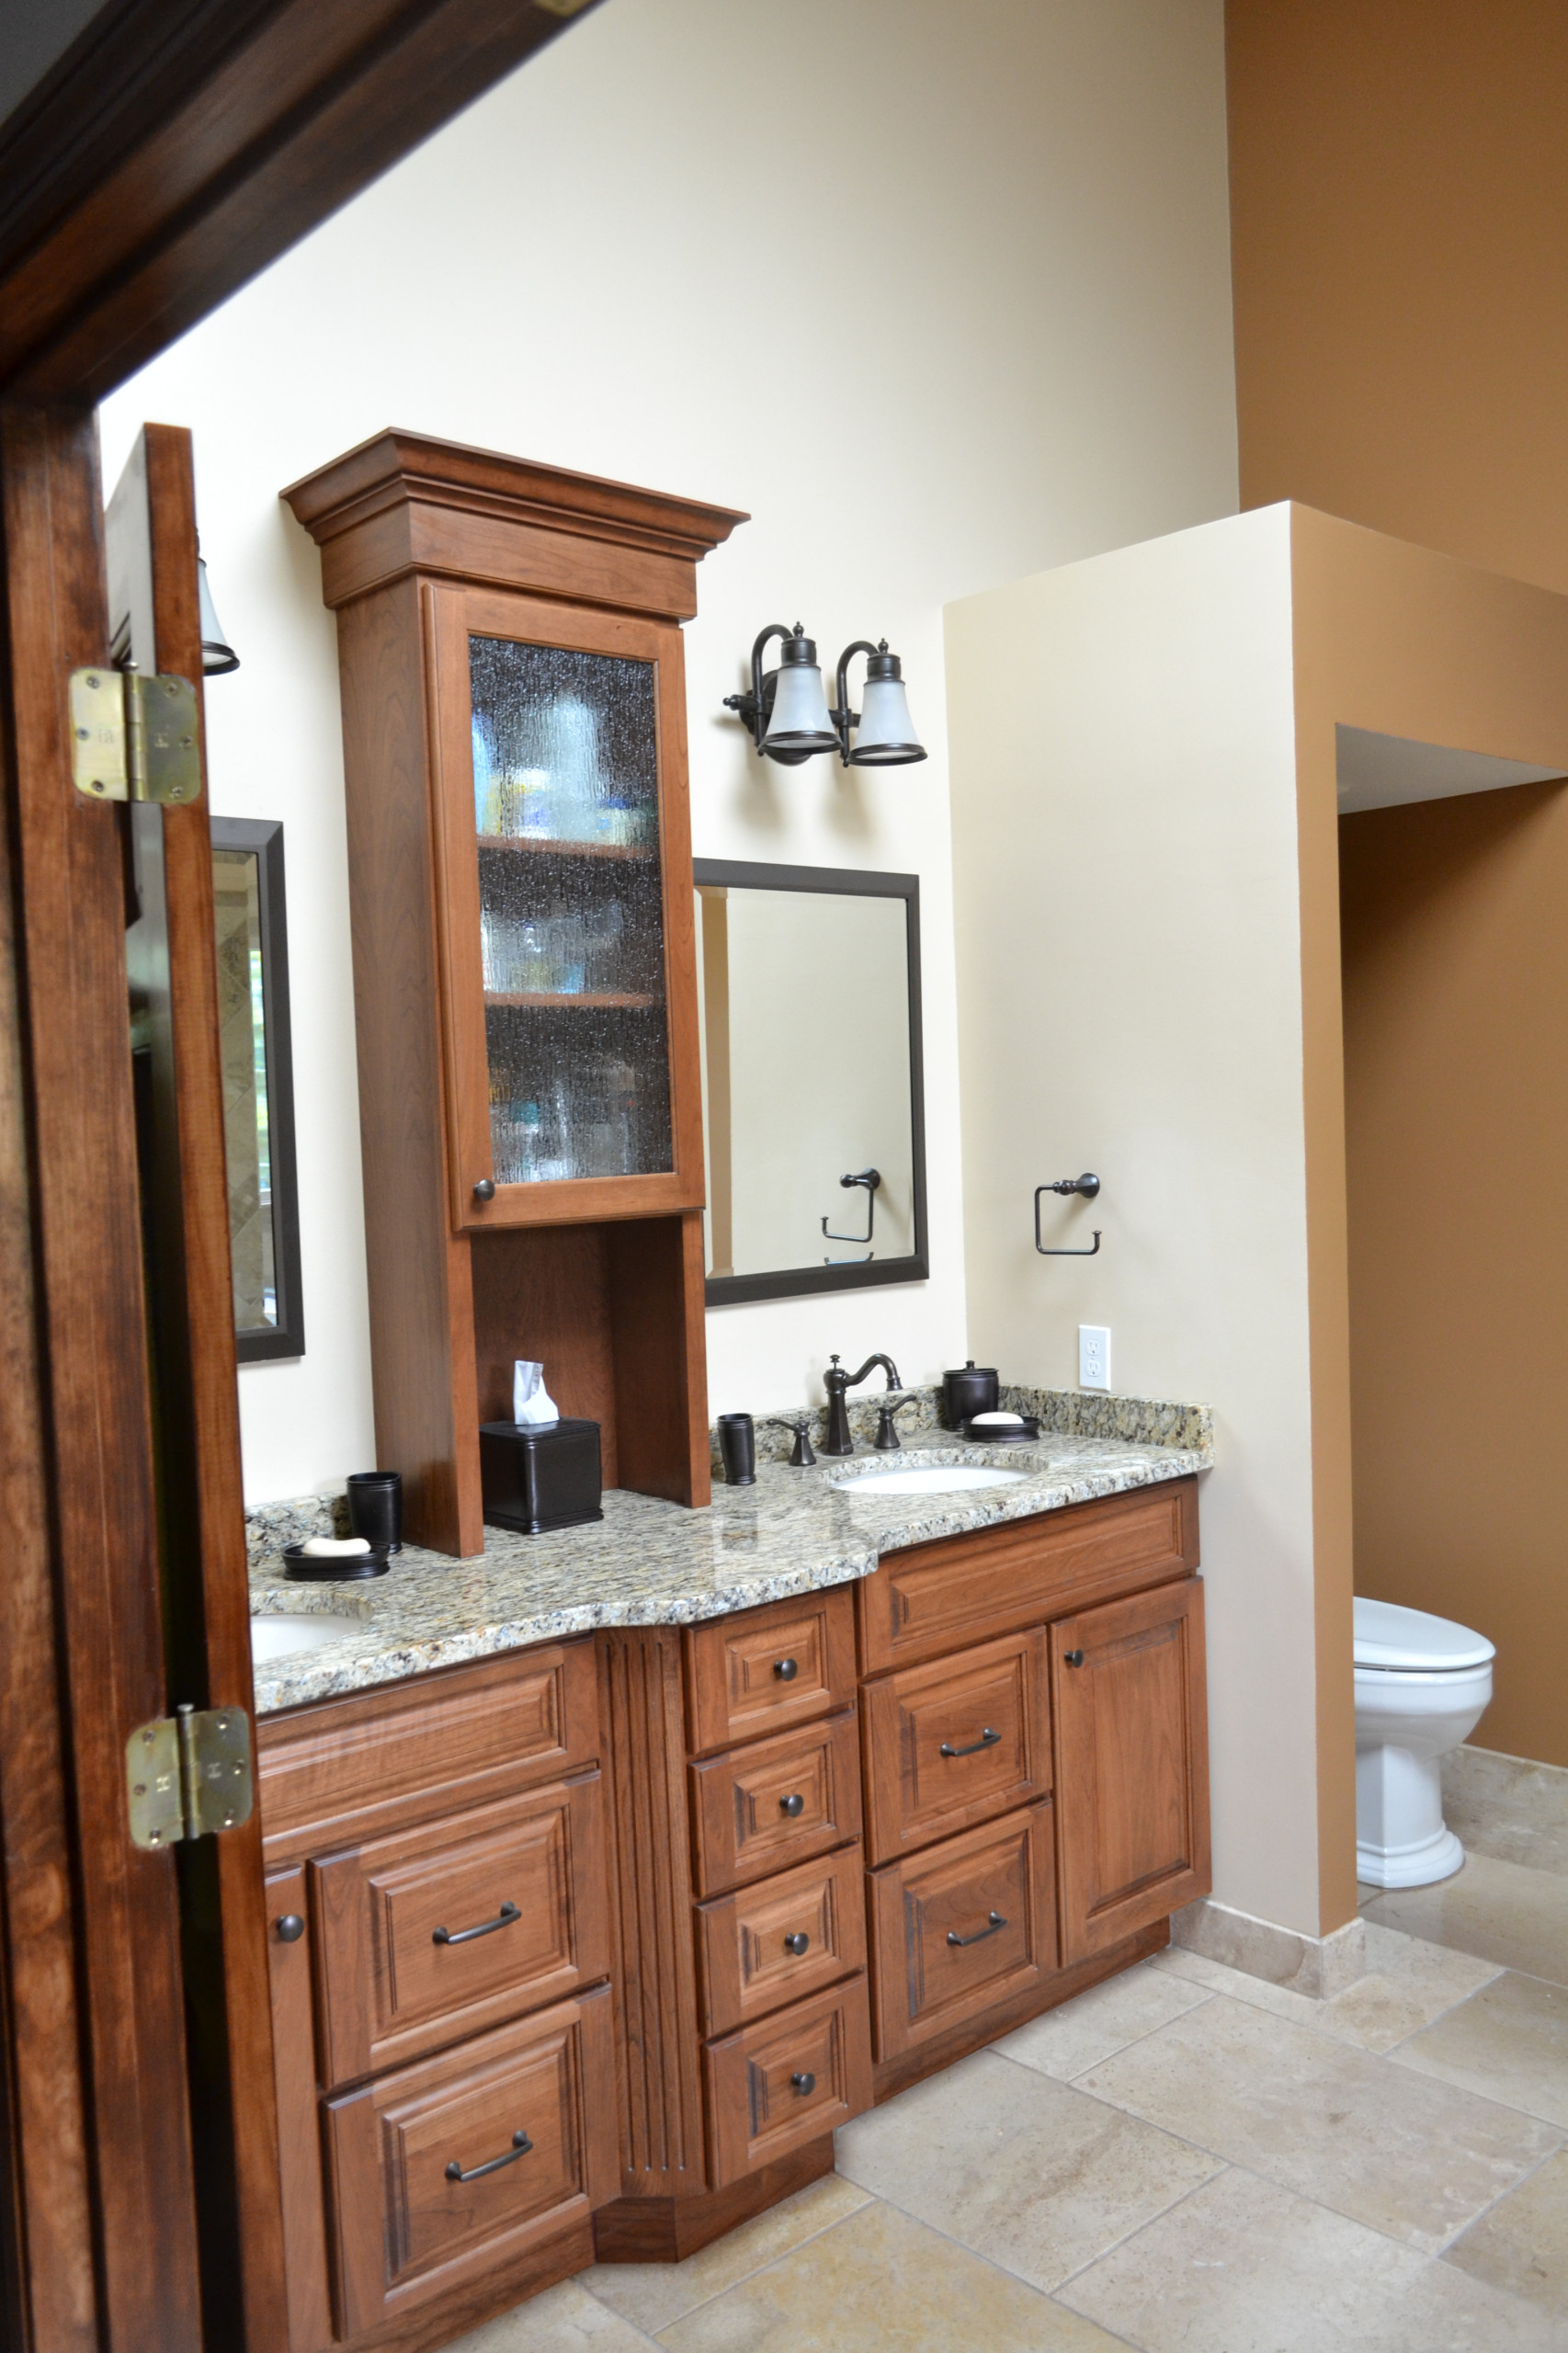 Master bath vanity with storage tower